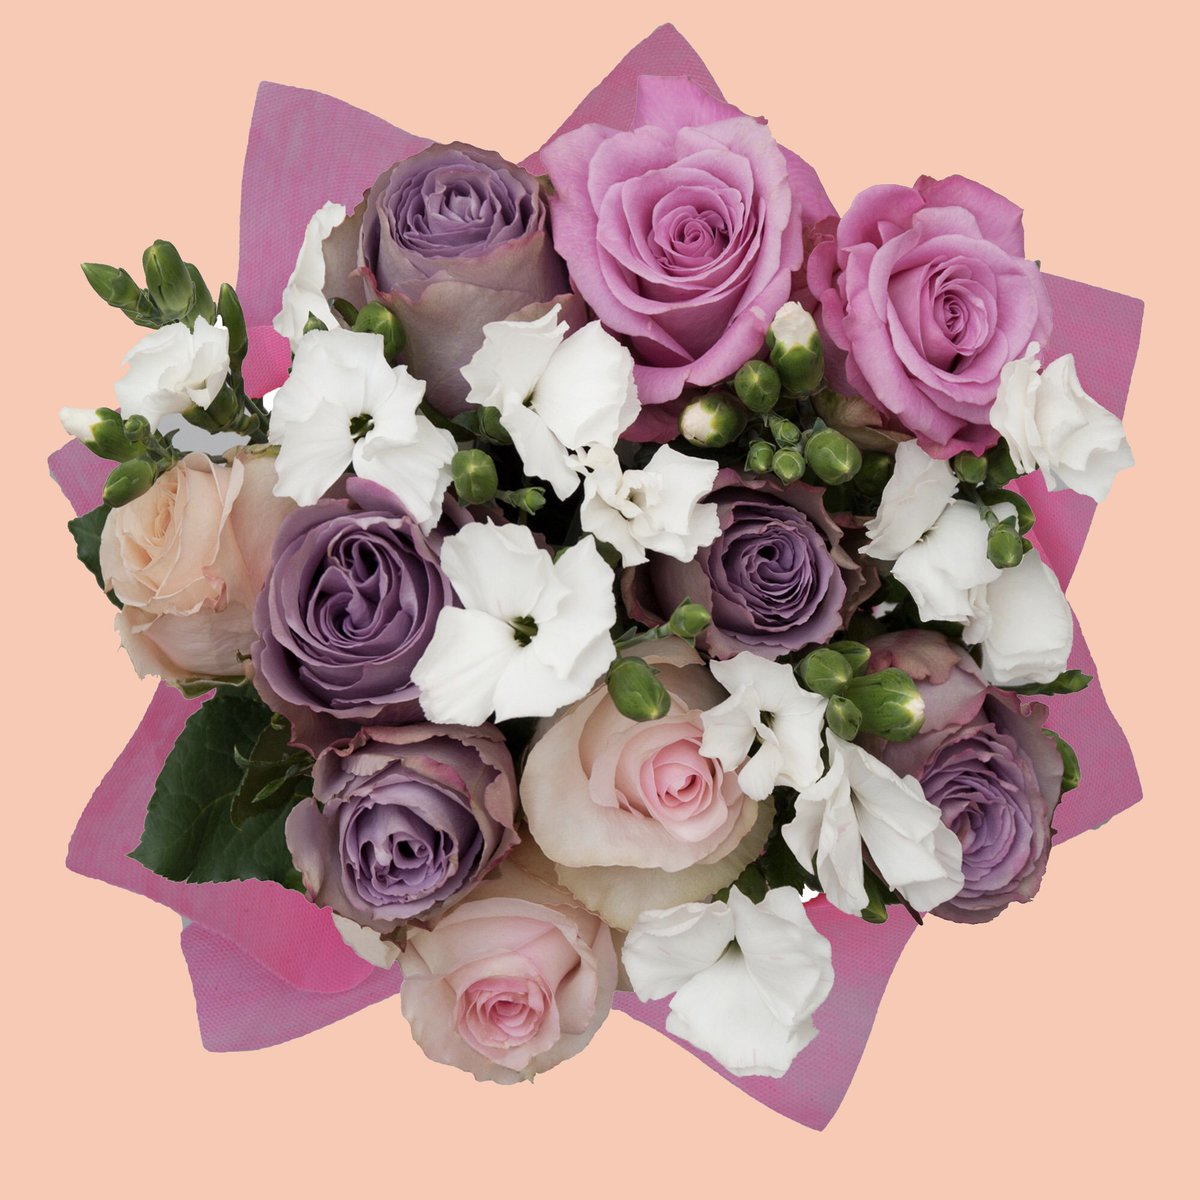 Happy Friday! We're currently falling into spring with our Harbour Sands Bouquet! http://bit.ly/harboursandsbouquet…   #bloomingmore #roses #moodforfloral #underthefloralspell #flowersoftheworld #floralinspiration #rosesofinstagram #floralphotography #floralstyling #flowerstagrammerpic.twitter.com/8uaPNZIar8